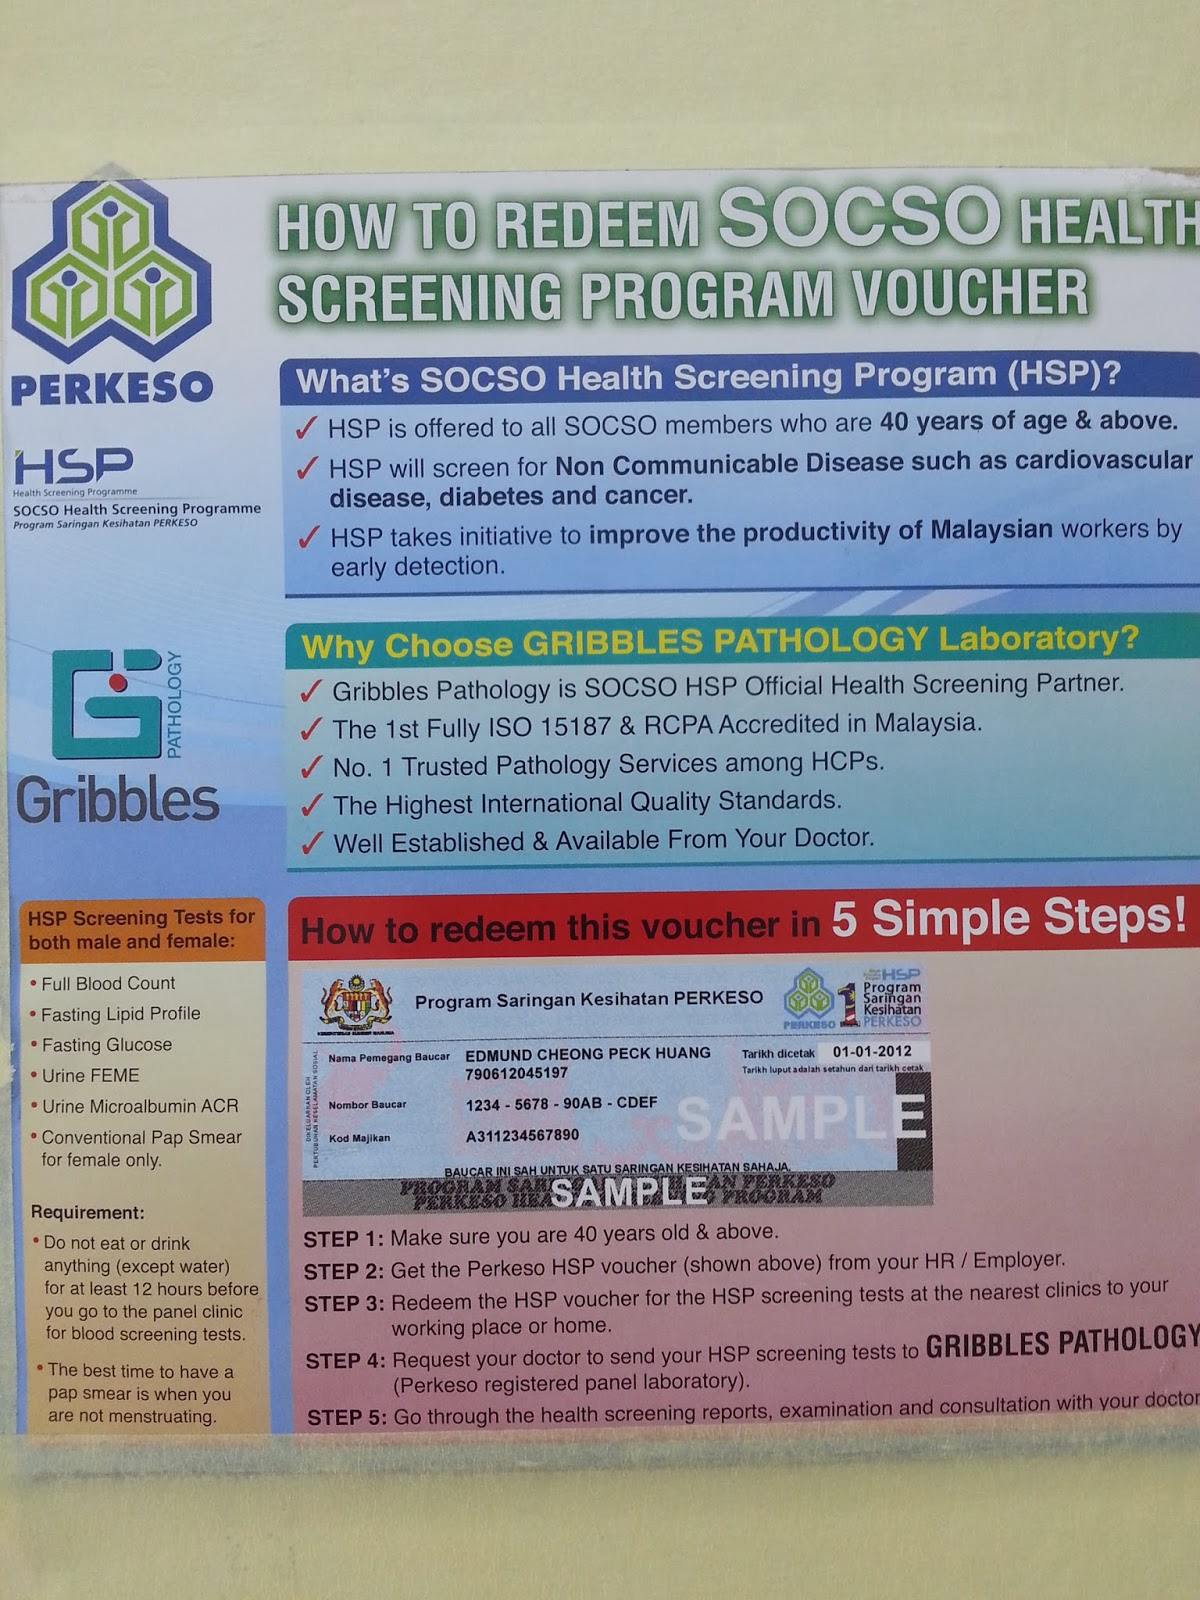 How To Redeem SOCSO Health Screening Program Voucher